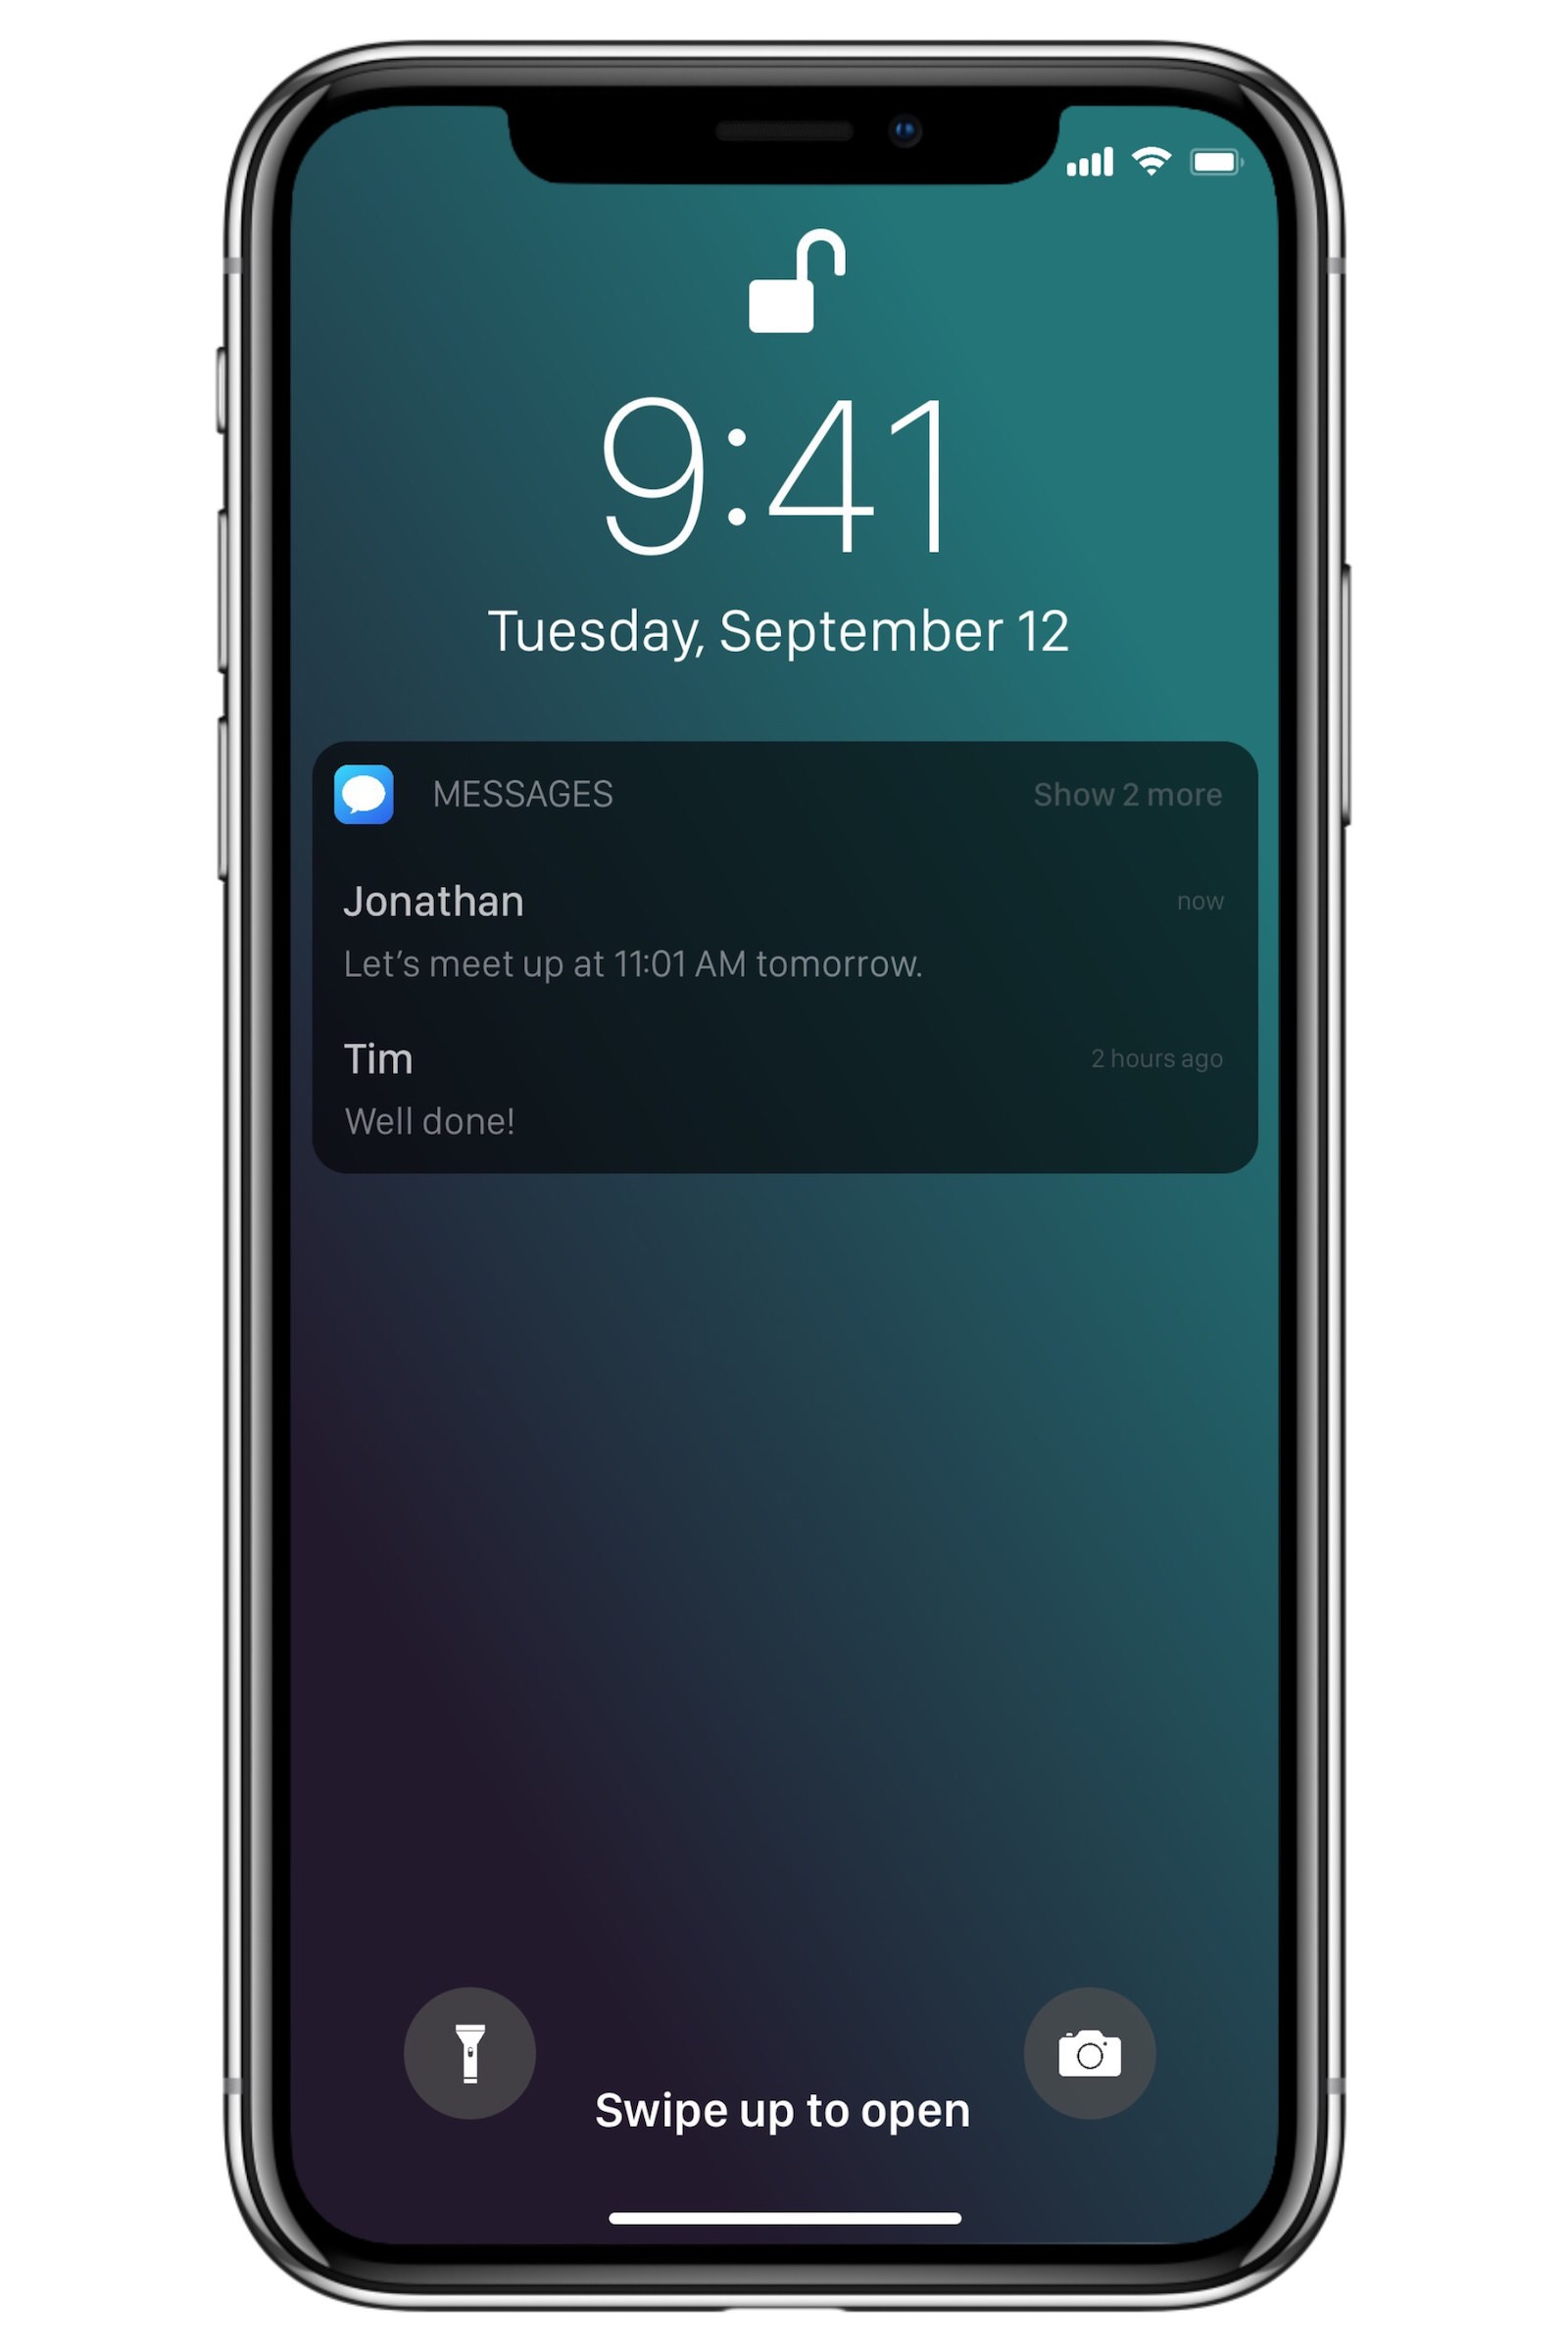 ios12-concept-images-16